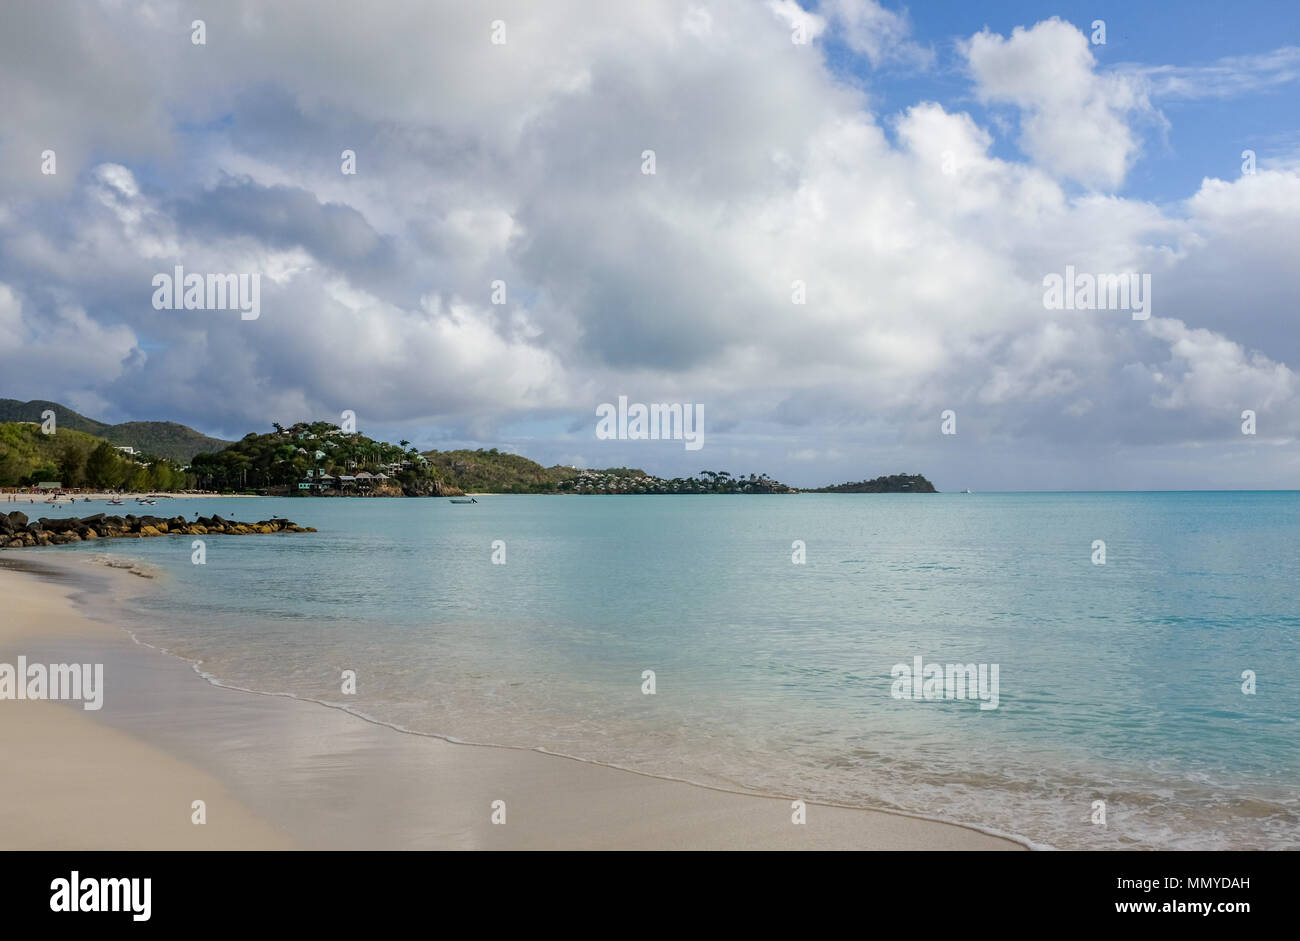 Antigua Lesser Antilles islands in the Caribbean West Indies - Beautiful Jolly Harbour sandy beach  Photograph taken by Simon Dack - Stock Image